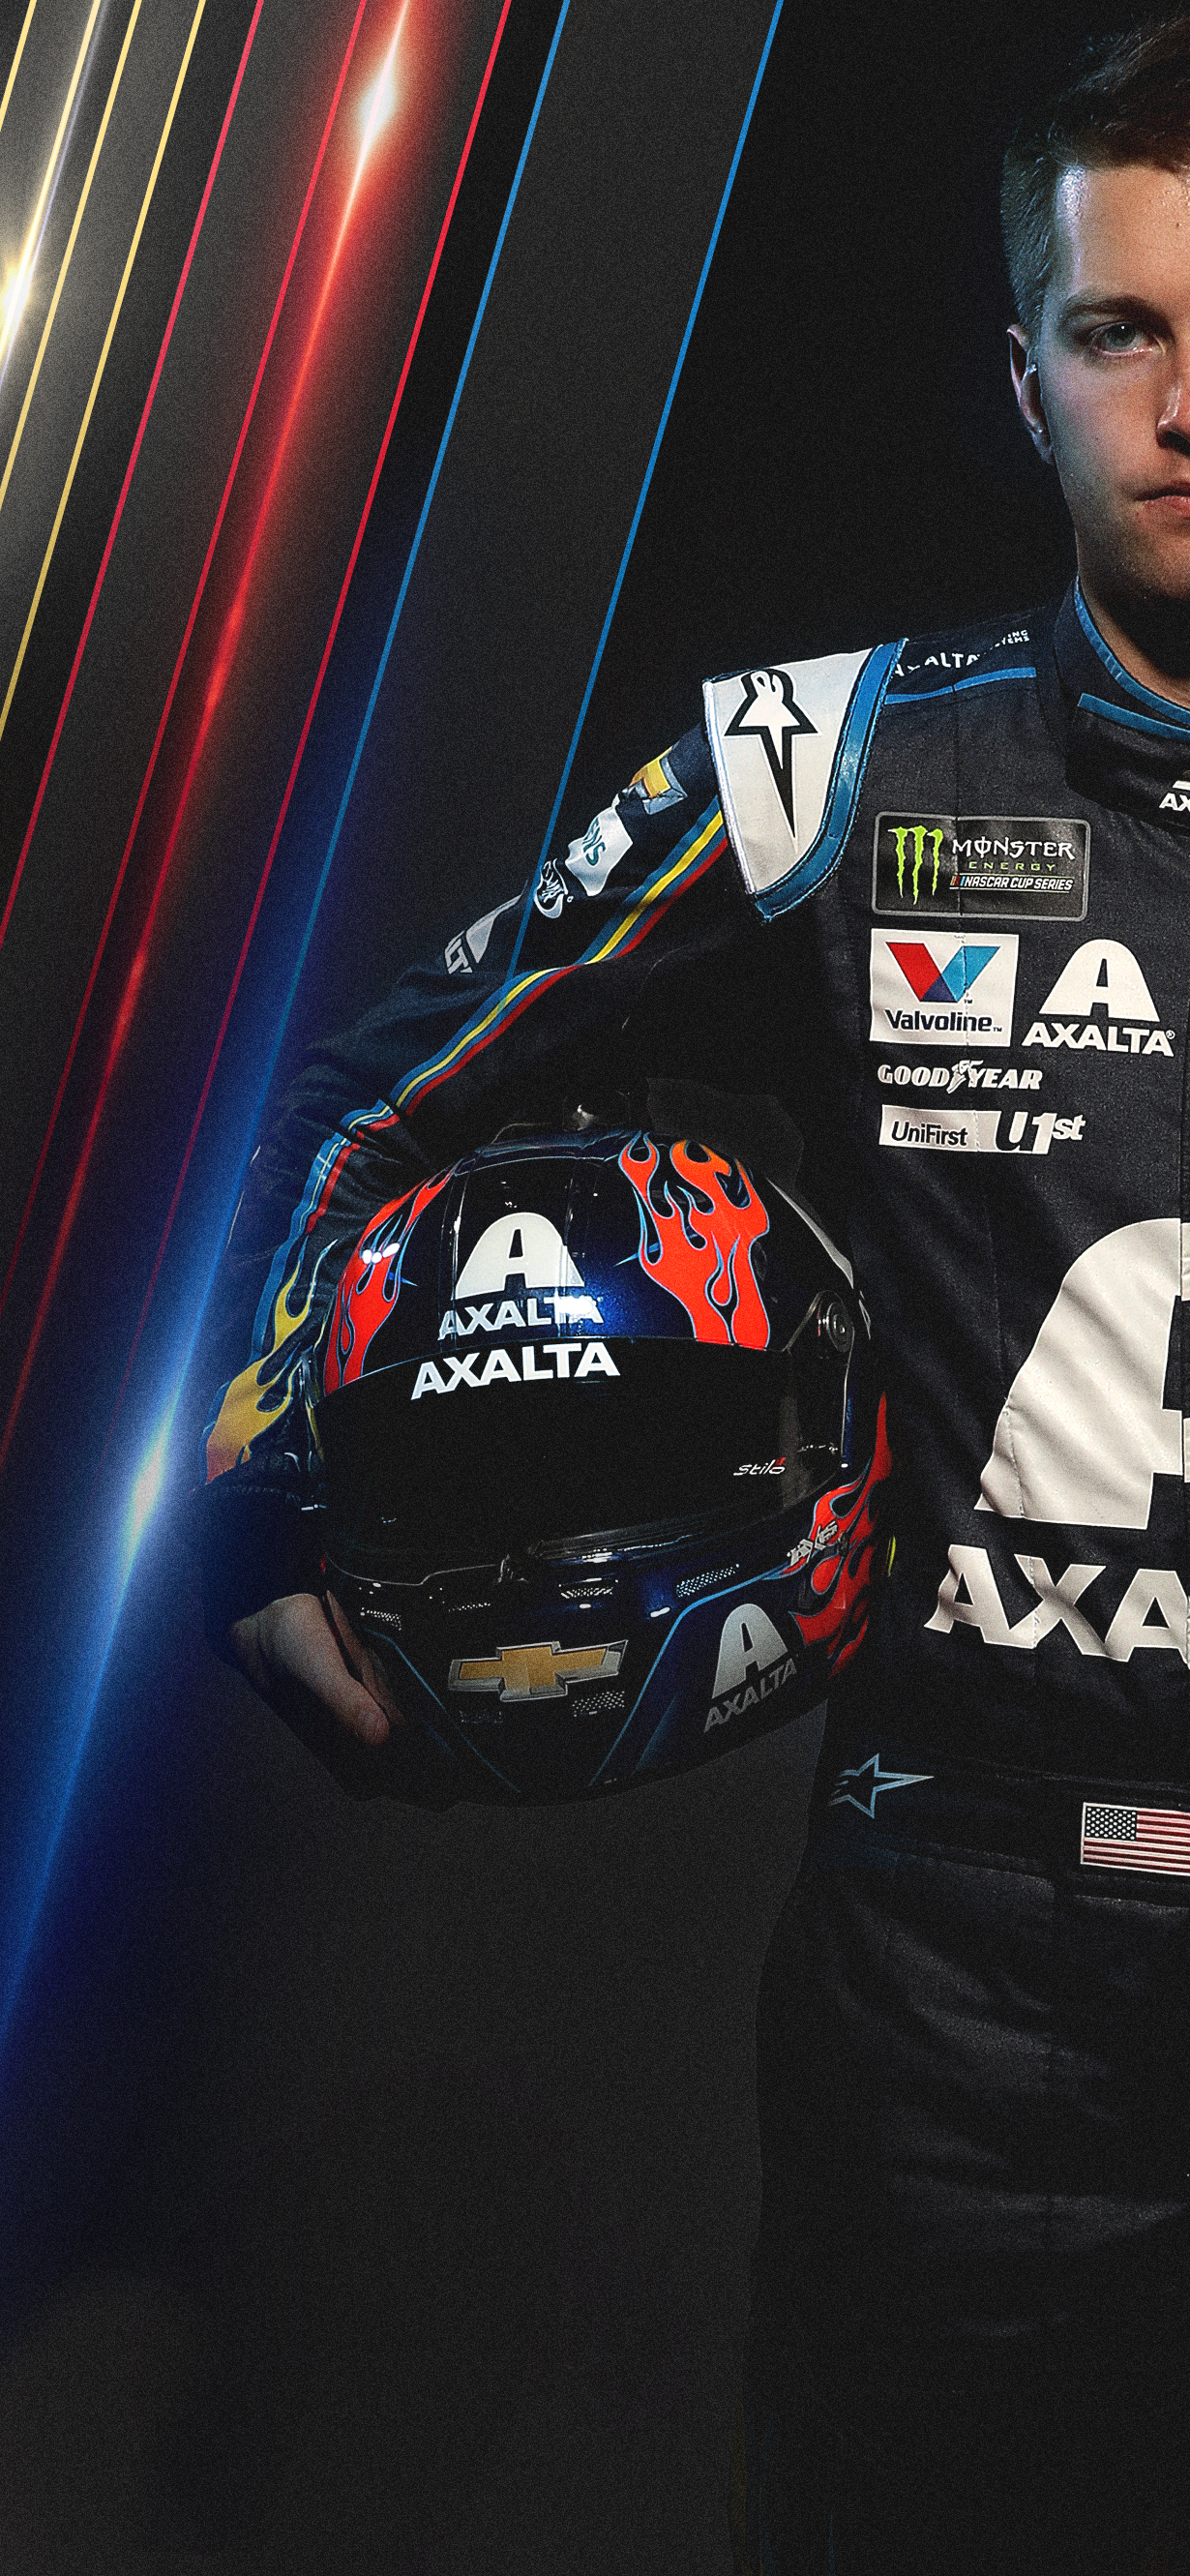 2019 NASCAR Wallpapers Official Site Of NASCAR 1230x2662